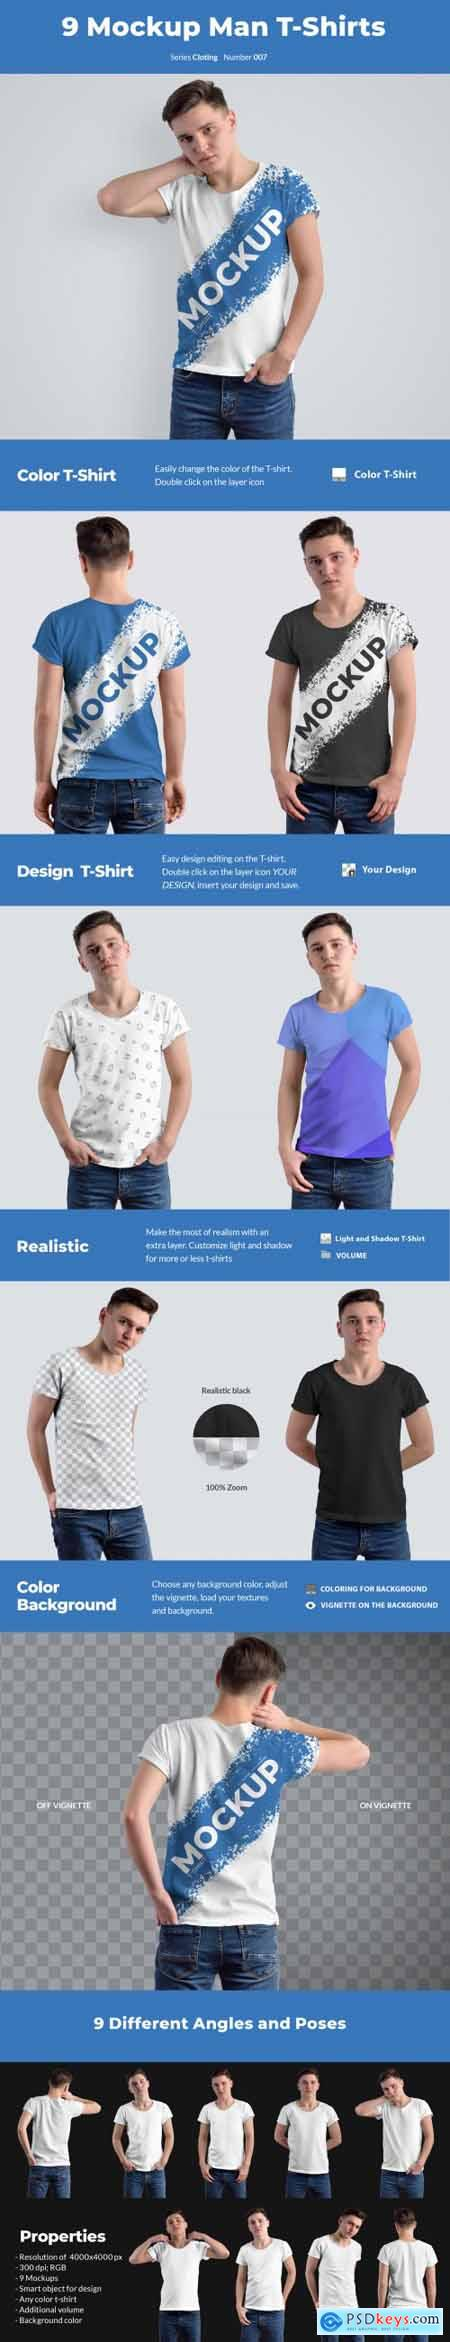 9 Mockups T-Shirts on the Mens